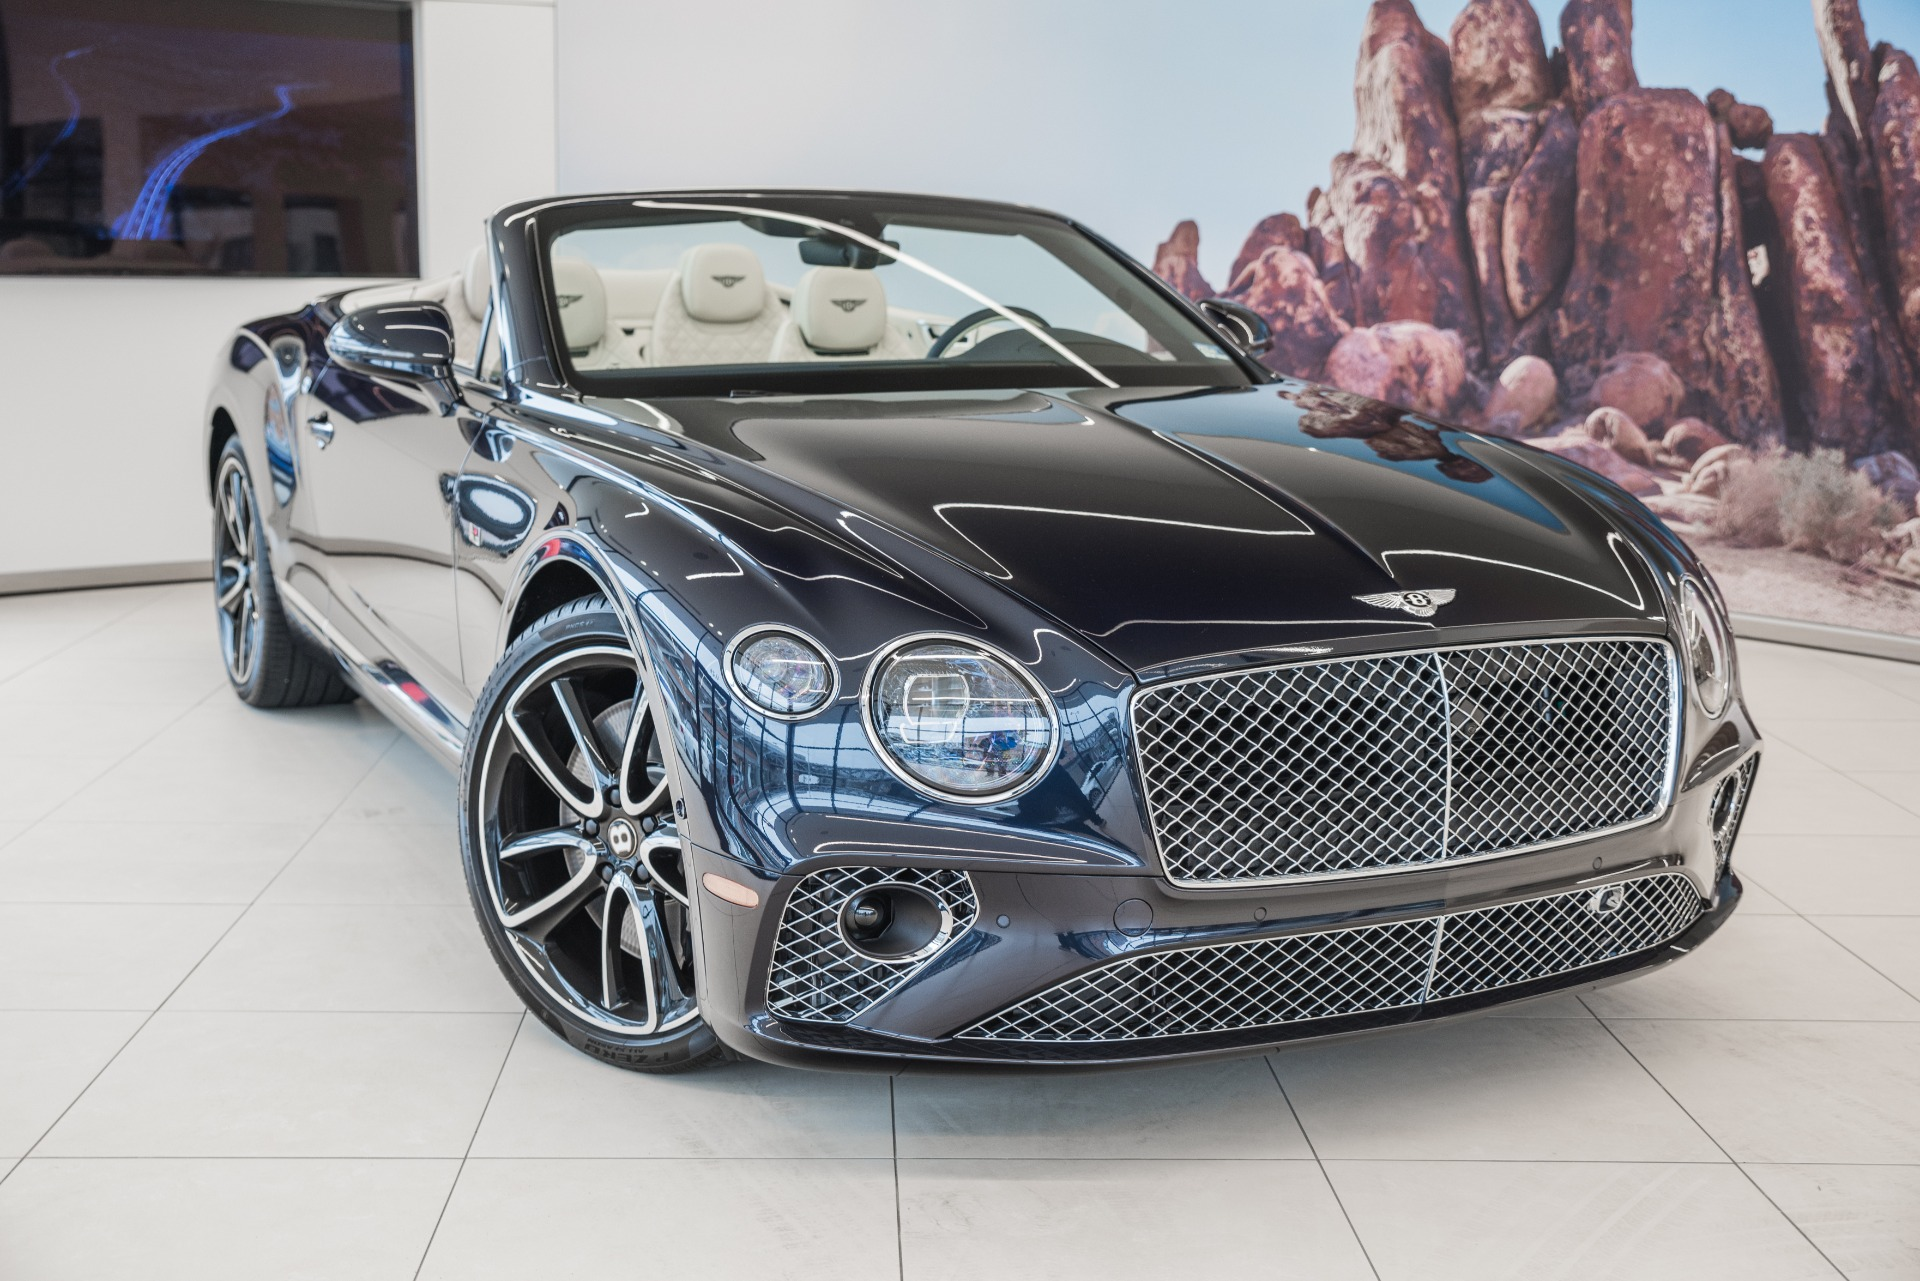 2020 Bentley Continental GT V8 Stock # 20N076405 for sale ...